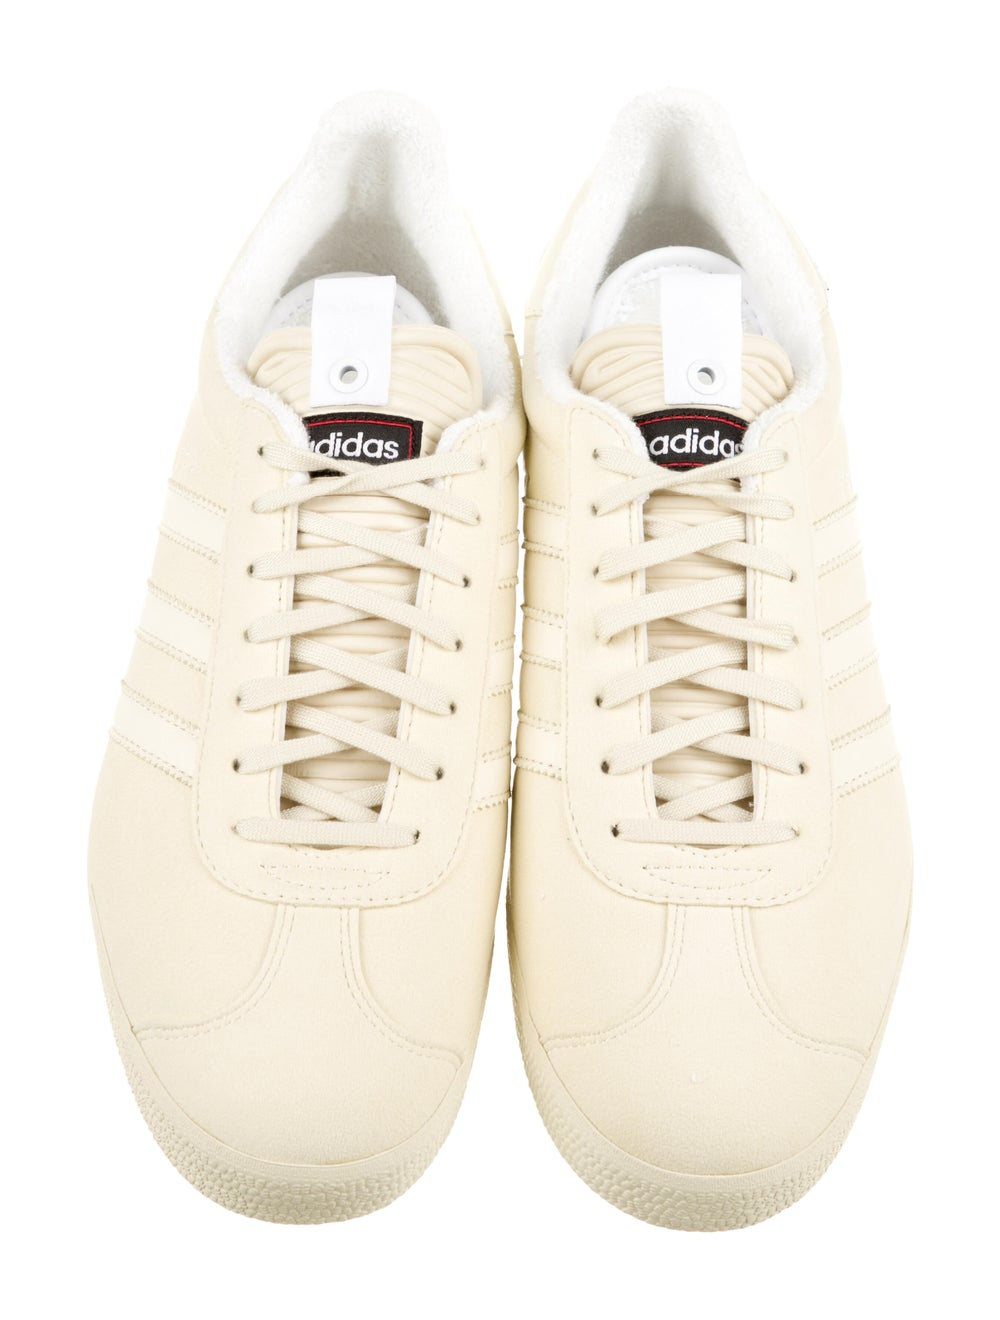 Adidas Gazelle SE Low-Top Sneakers w/ Tags - image 3